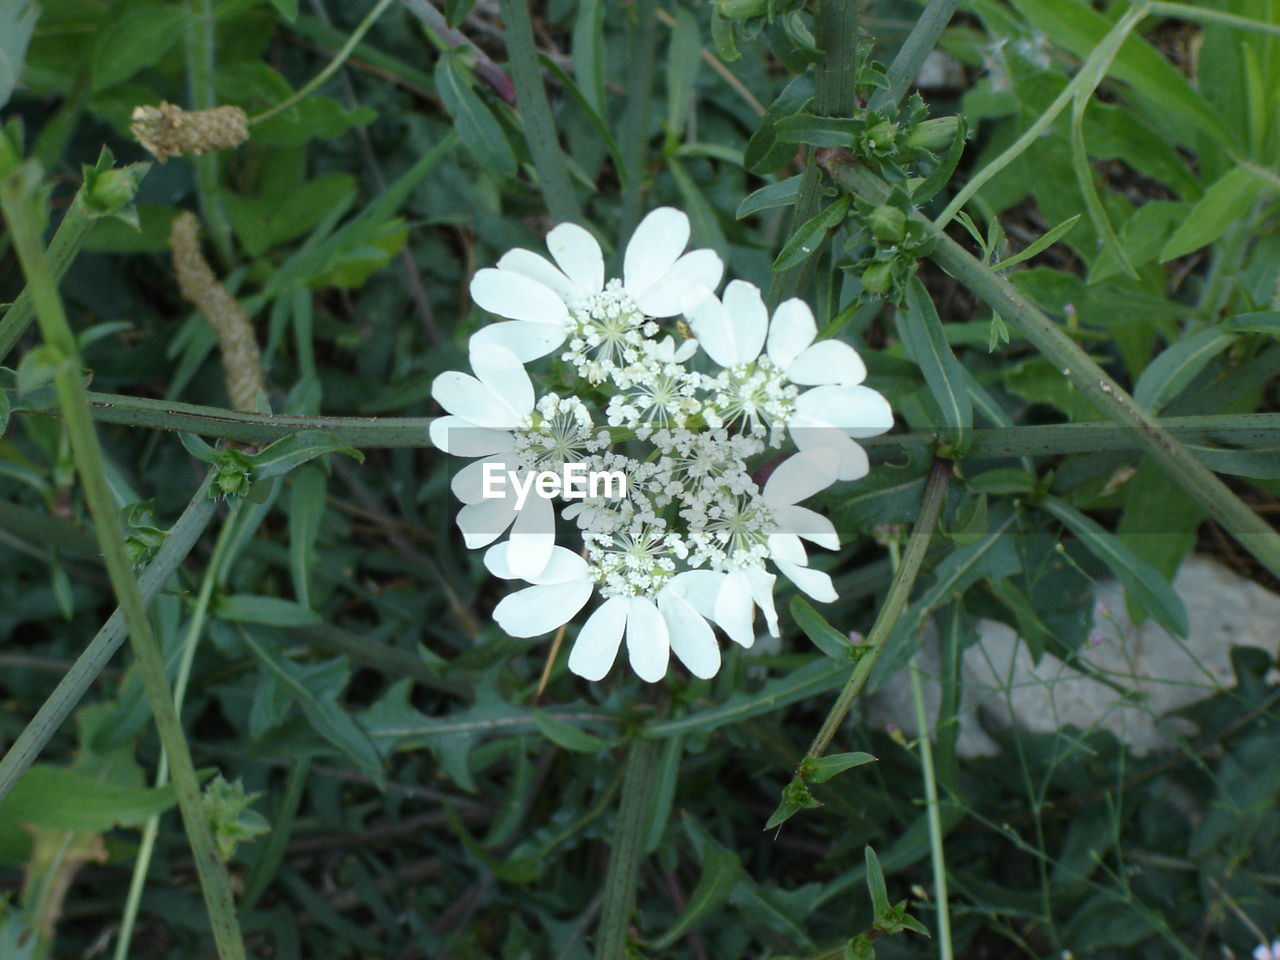 flower, growth, nature, white color, beauty in nature, plant, freshness, green color, fragility, petal, high angle view, no people, outdoors, blooming, flower head, day, leaf, grass, close-up